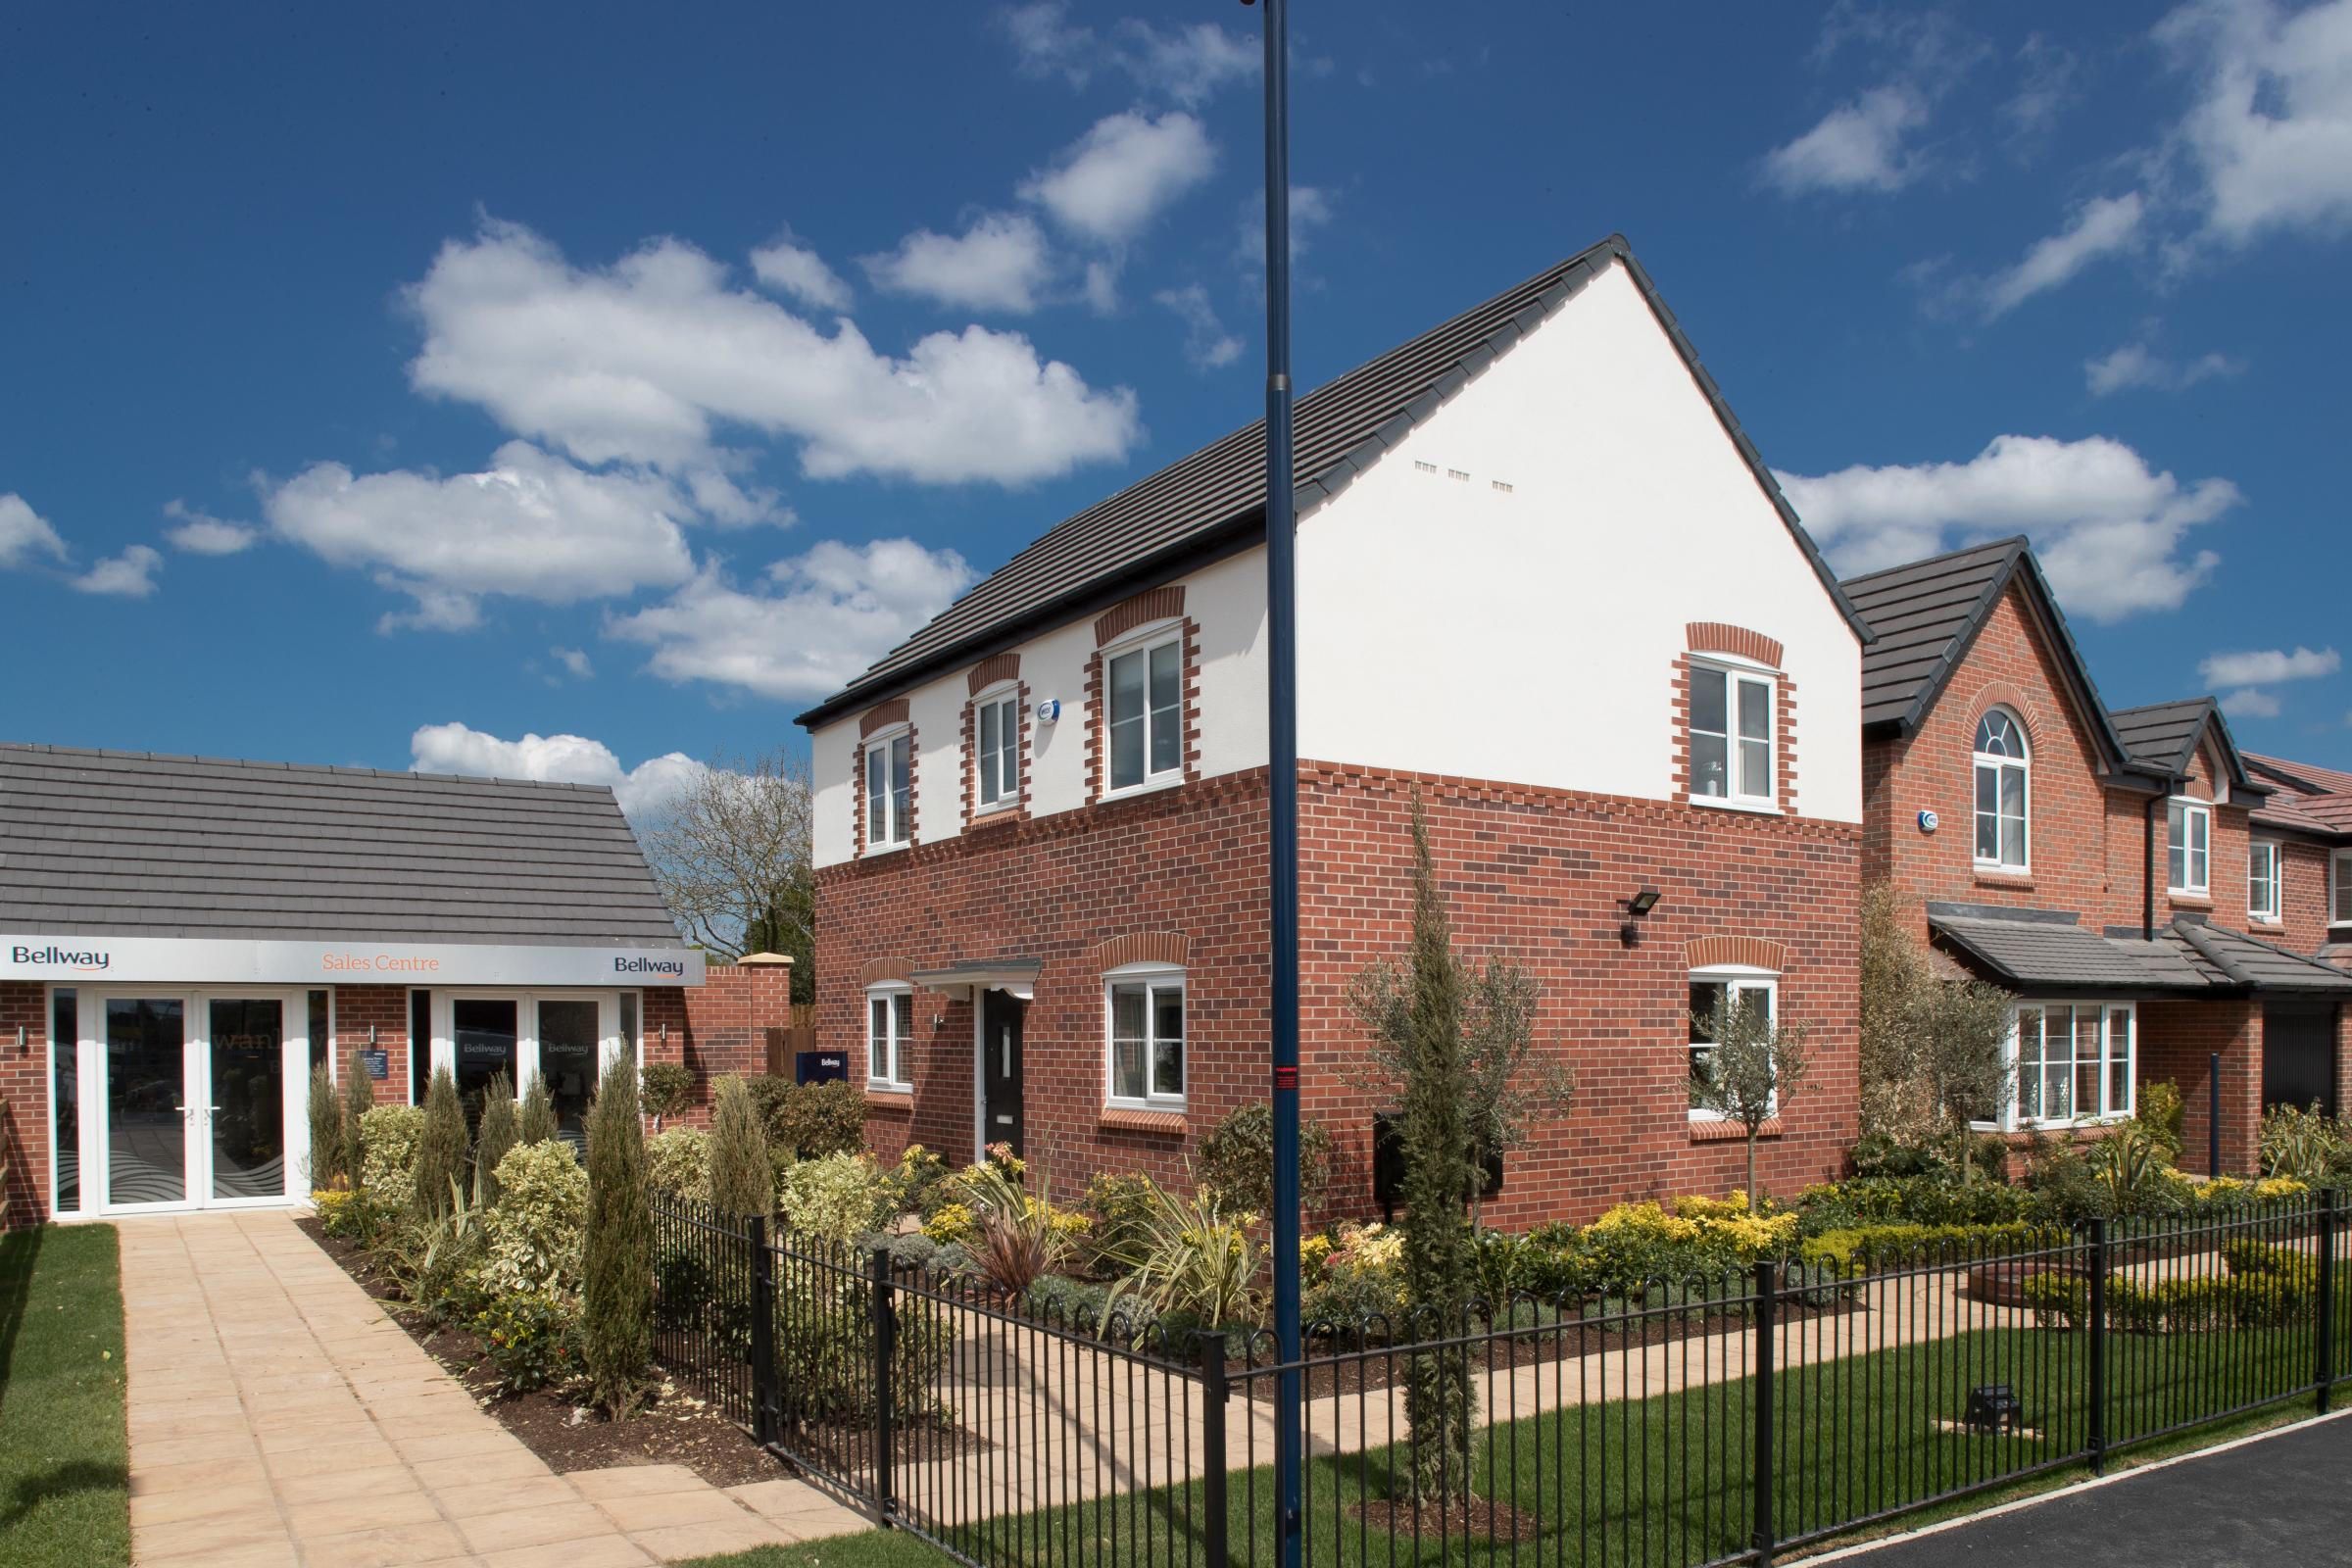 Bellway Homes has named a new housing development as Platts Meadow after Frank and Sandra Platt who owned and farmed the land for more than 50 years